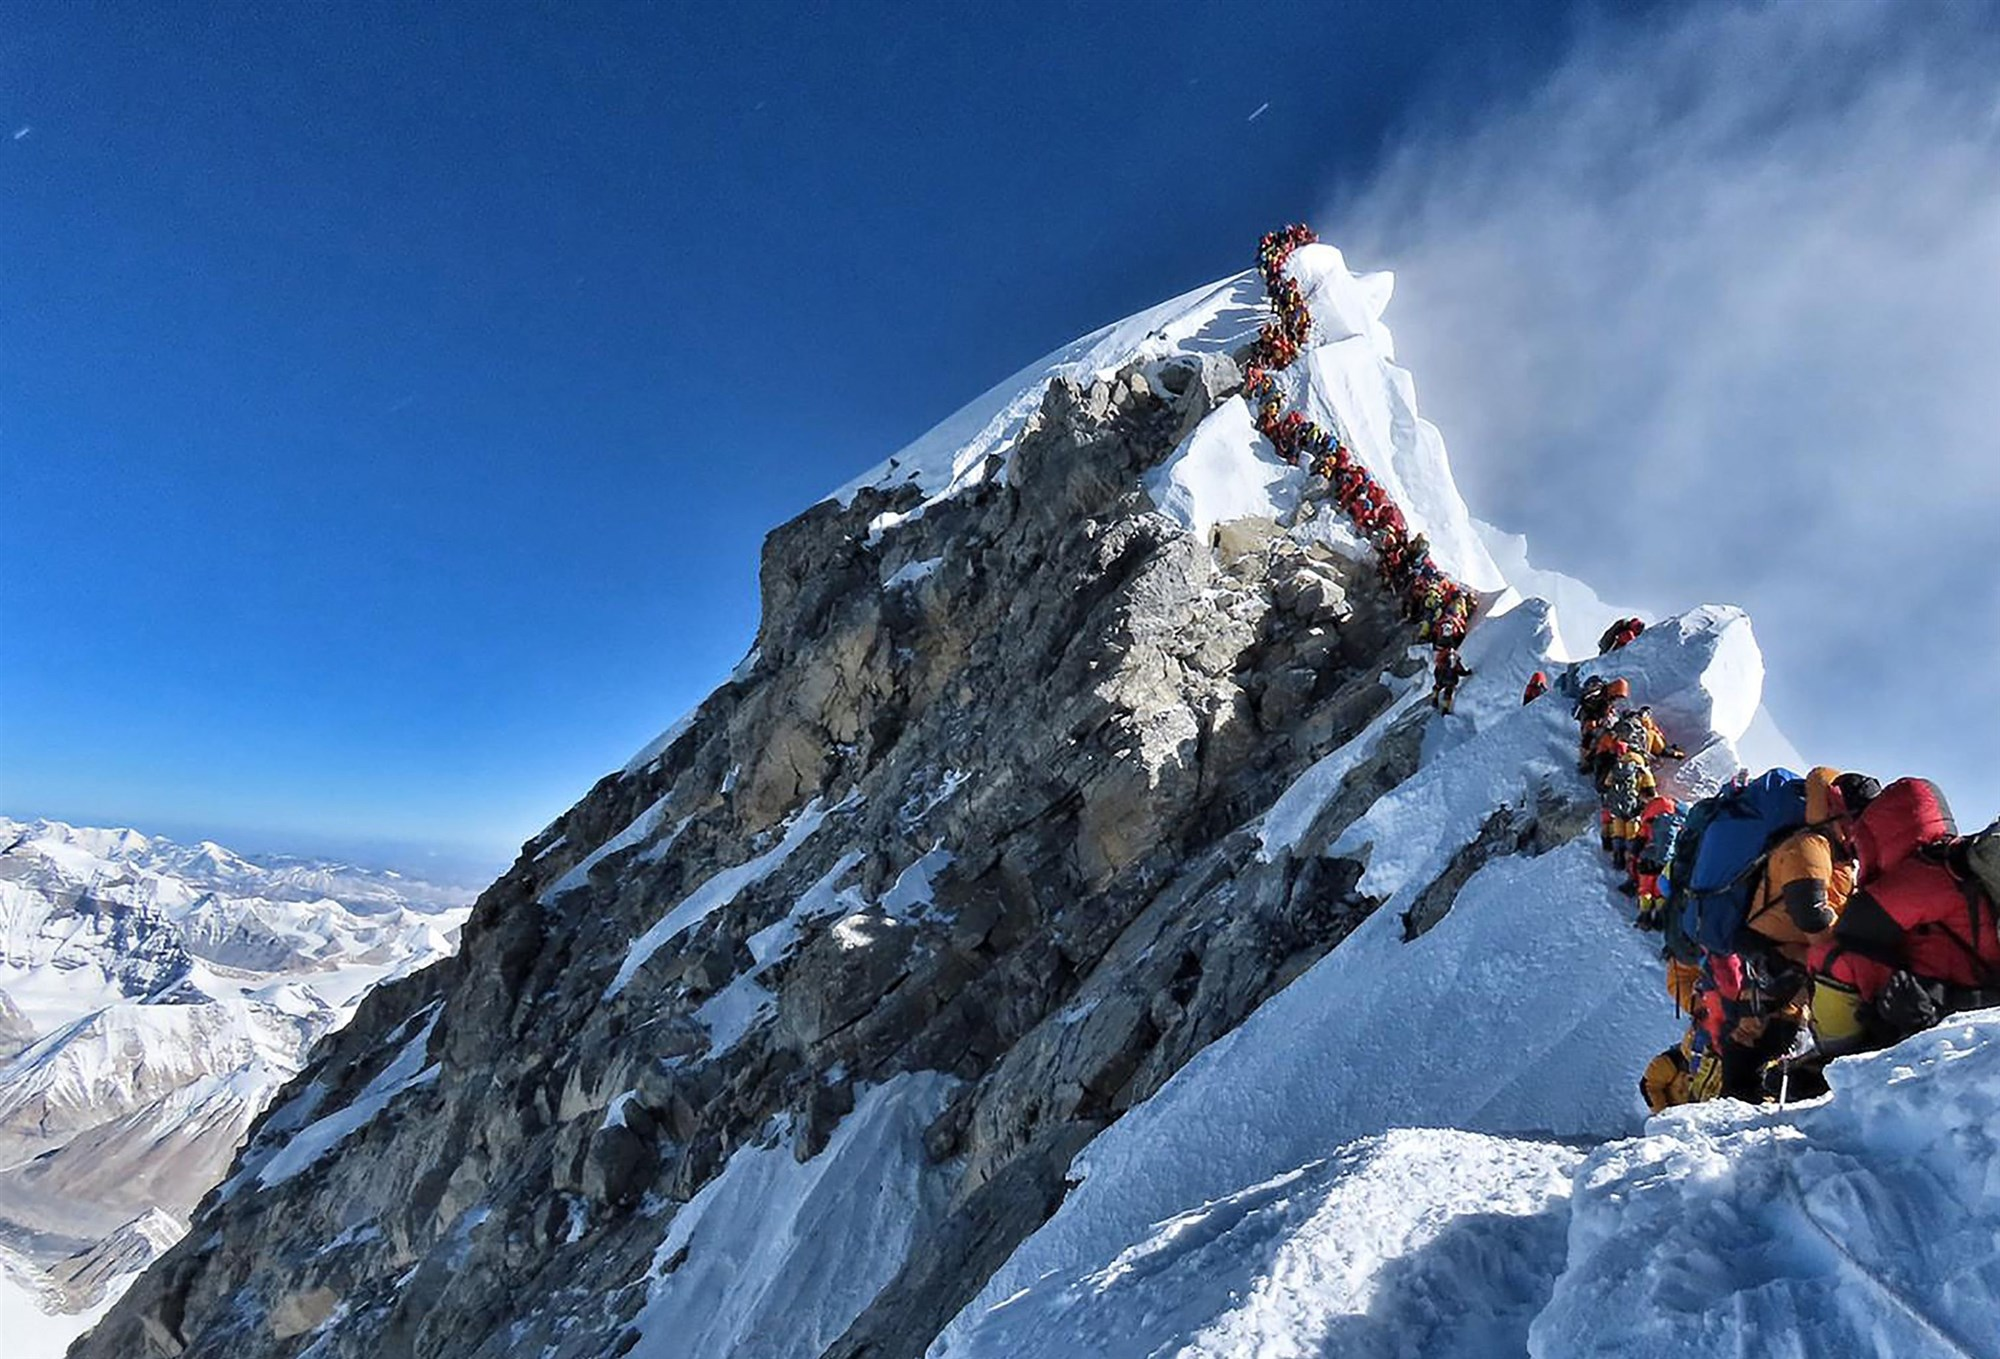 The crowded approach to the peak of Mount Everest